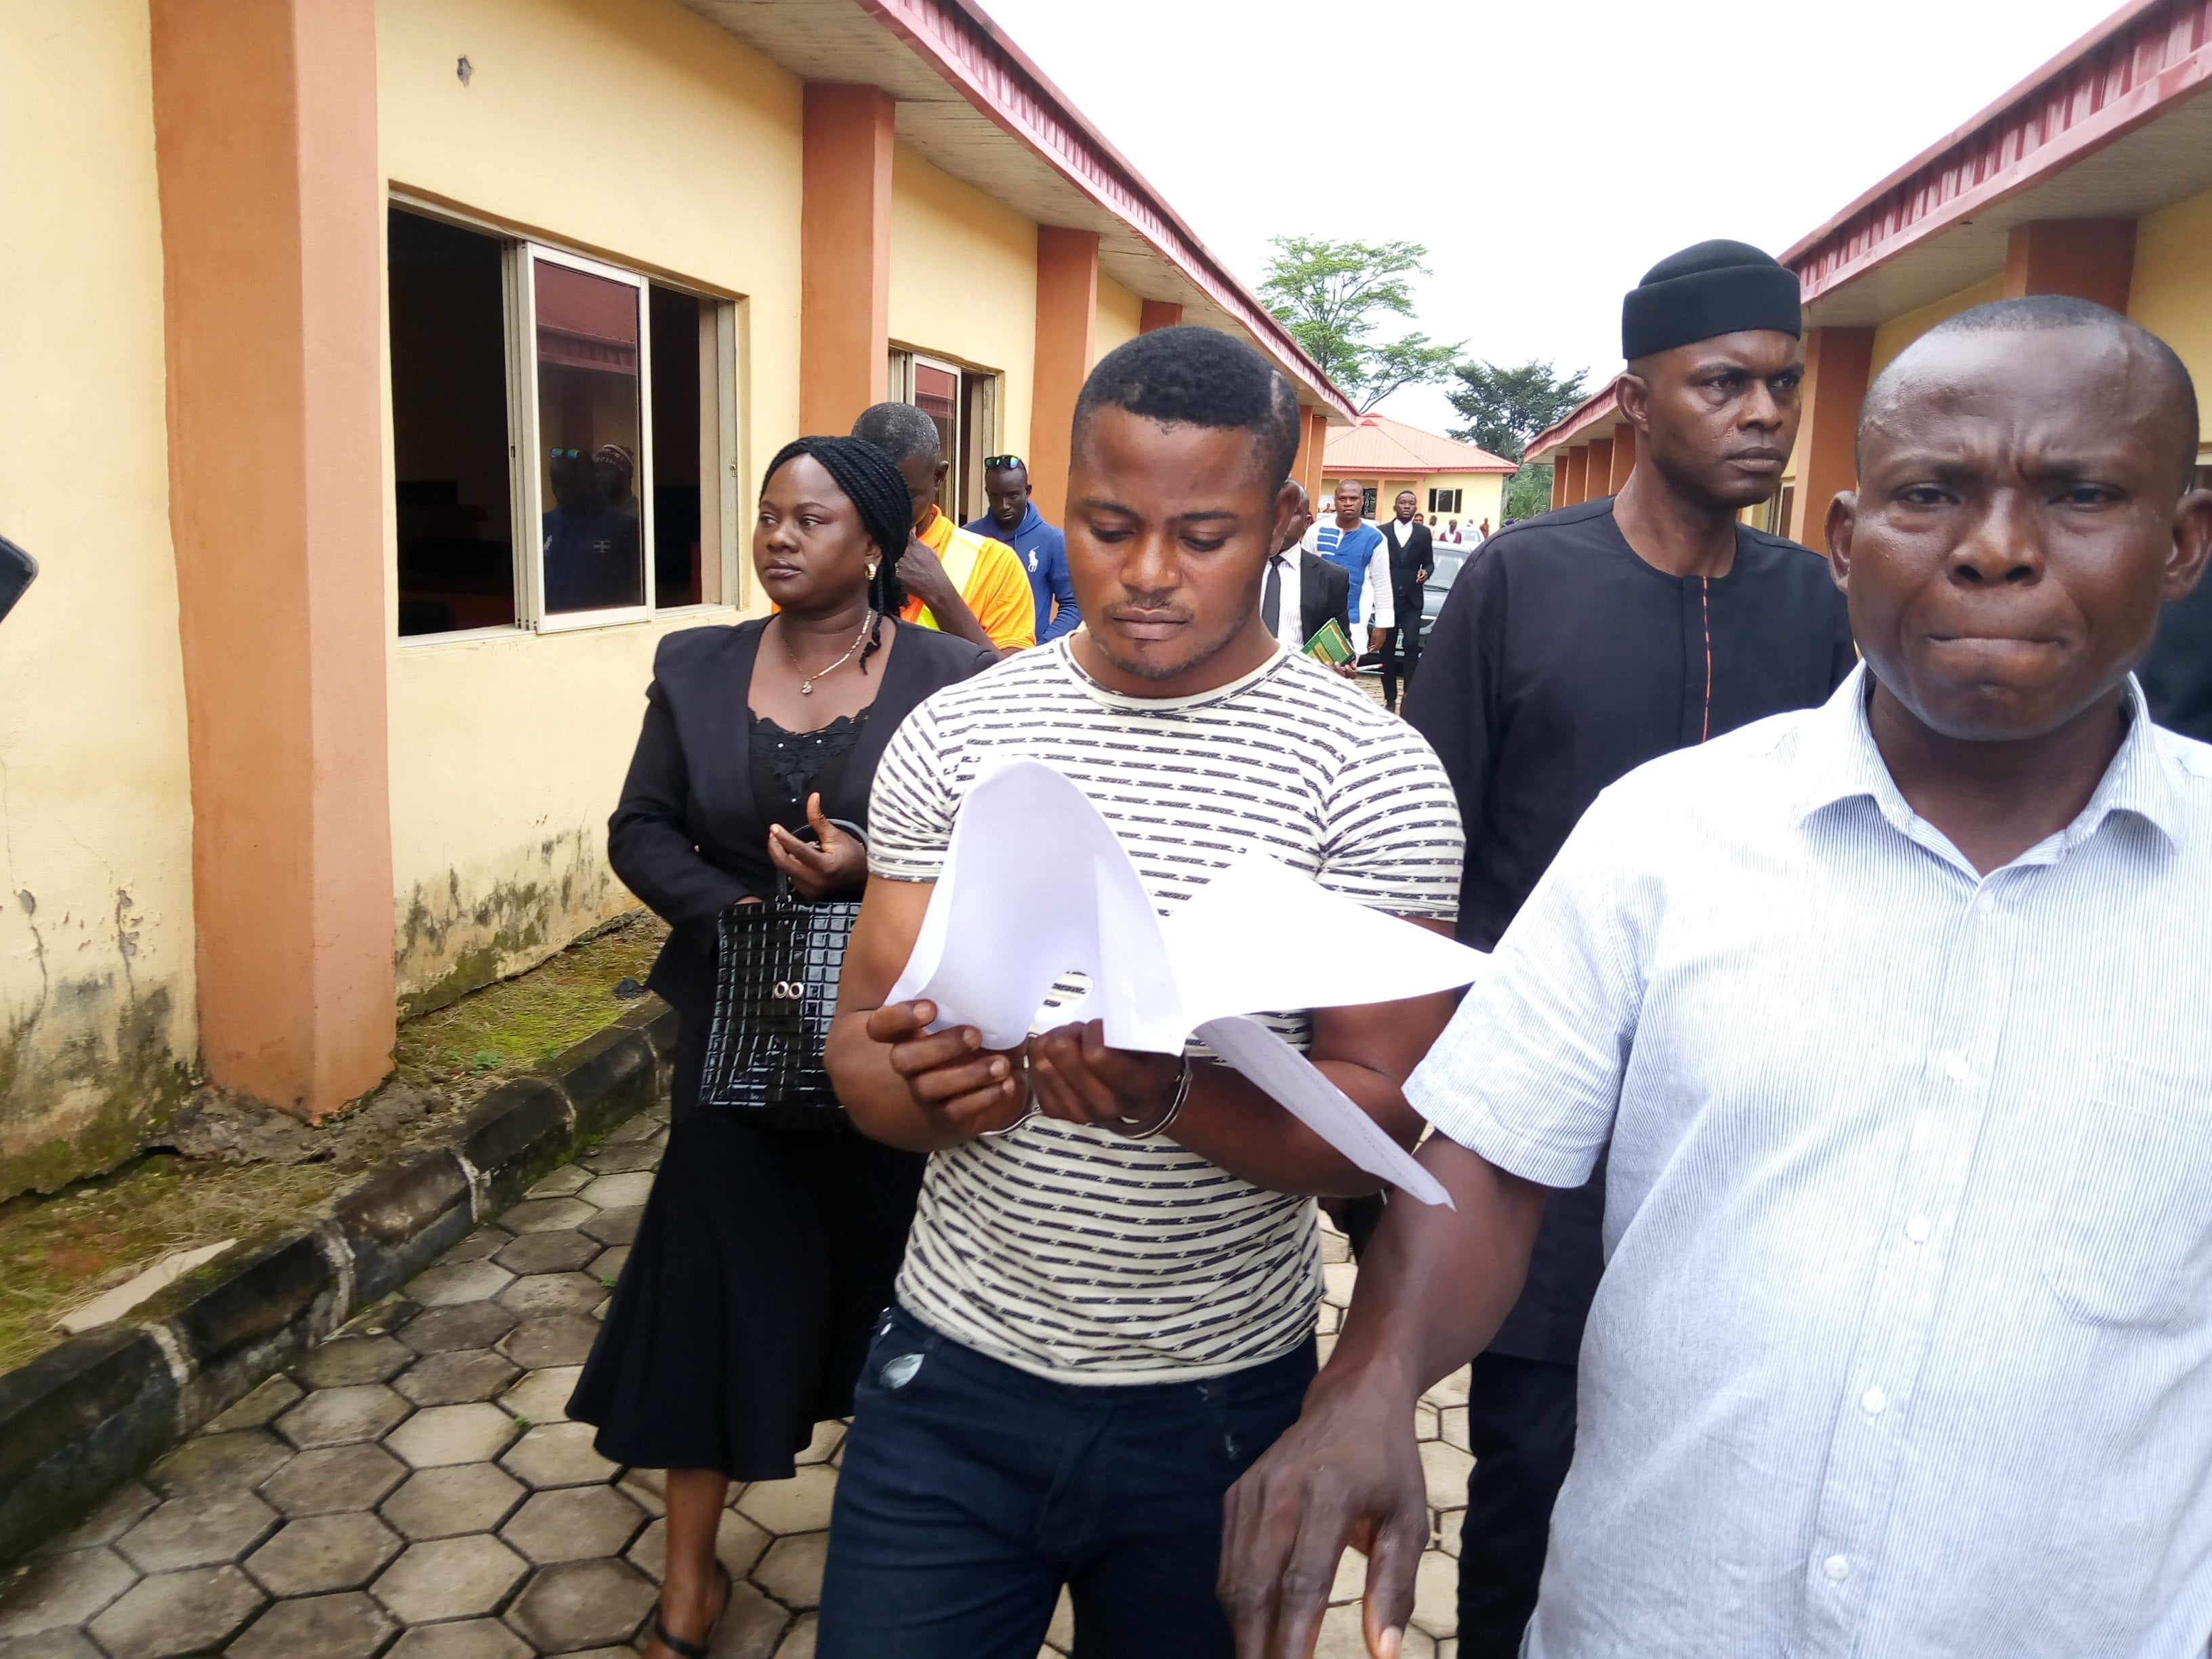 IMG 20190814 092855 7 - Soldier Accused Of Raping University Student Arraigned In Court (Photos)